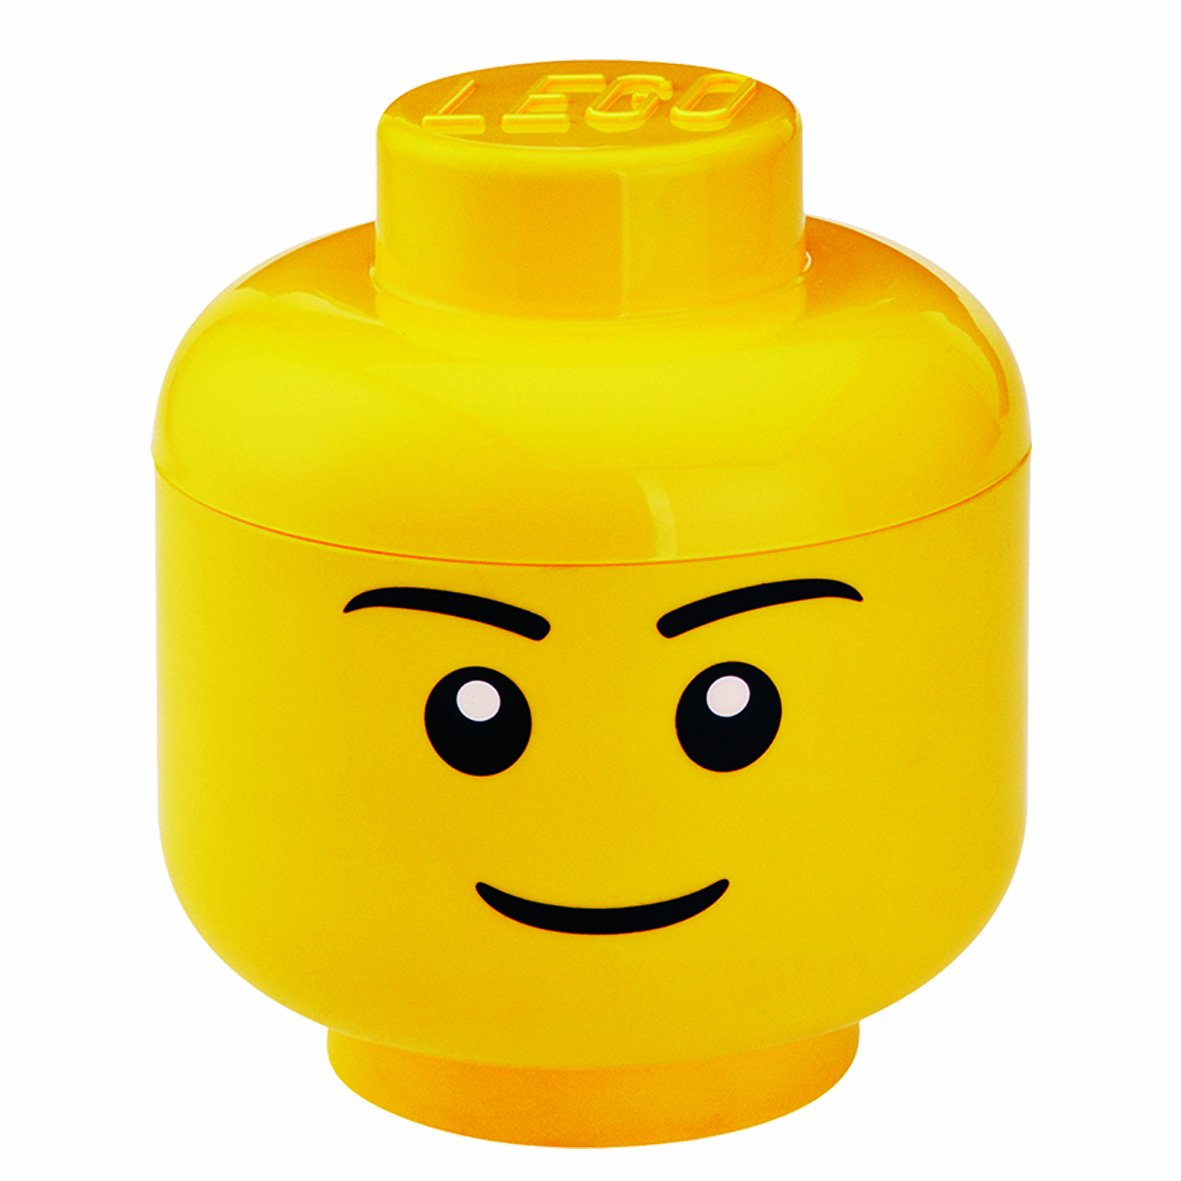 LEGO Storage Head Small, Boy,Yellow Room Copenhagen Inc 4031 40311732_giallo